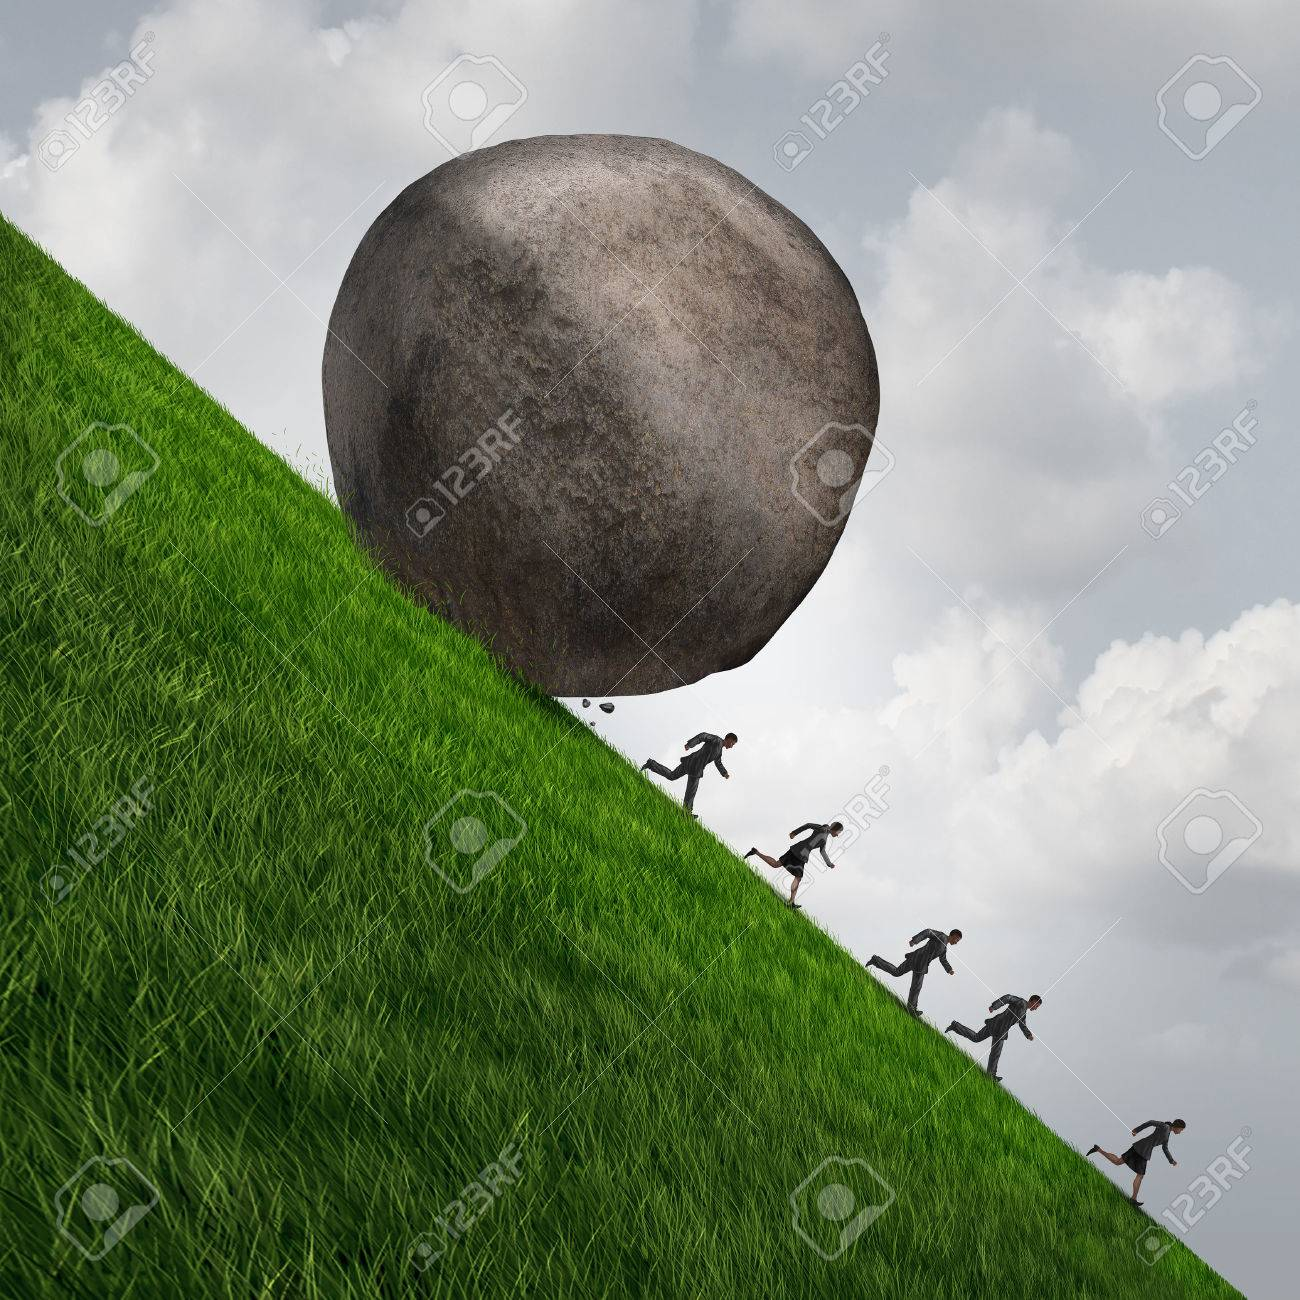 Corporate pressure business concept as a huge boulder rock rolling down a hill with running businesswomen and businessmen as an economic risk and danger metaphor with 3D illistration elements. Standard-Bild - 58584038